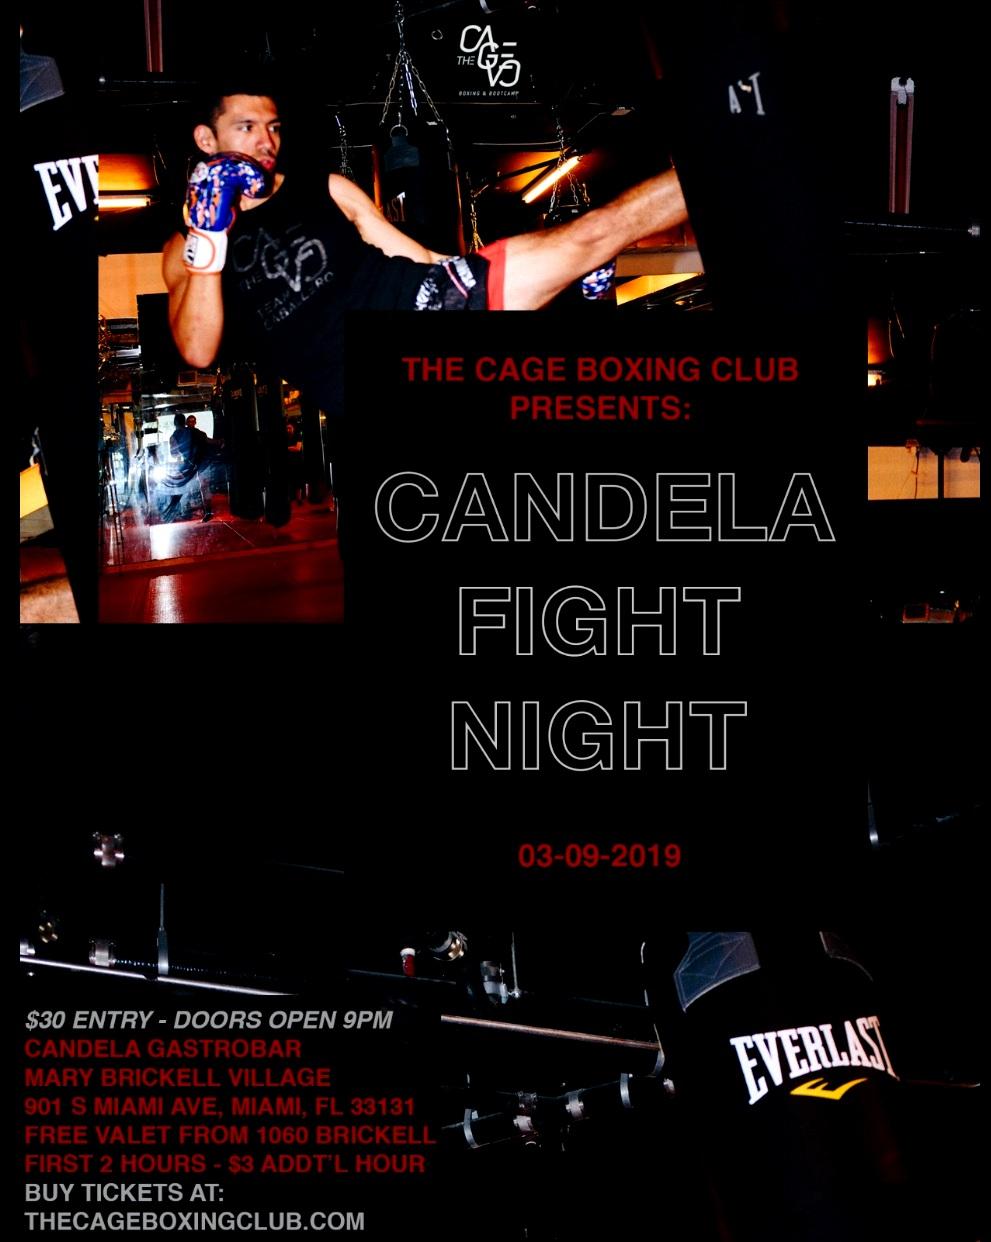 candela+fight+night+the+Cage+Boxing_.jpg